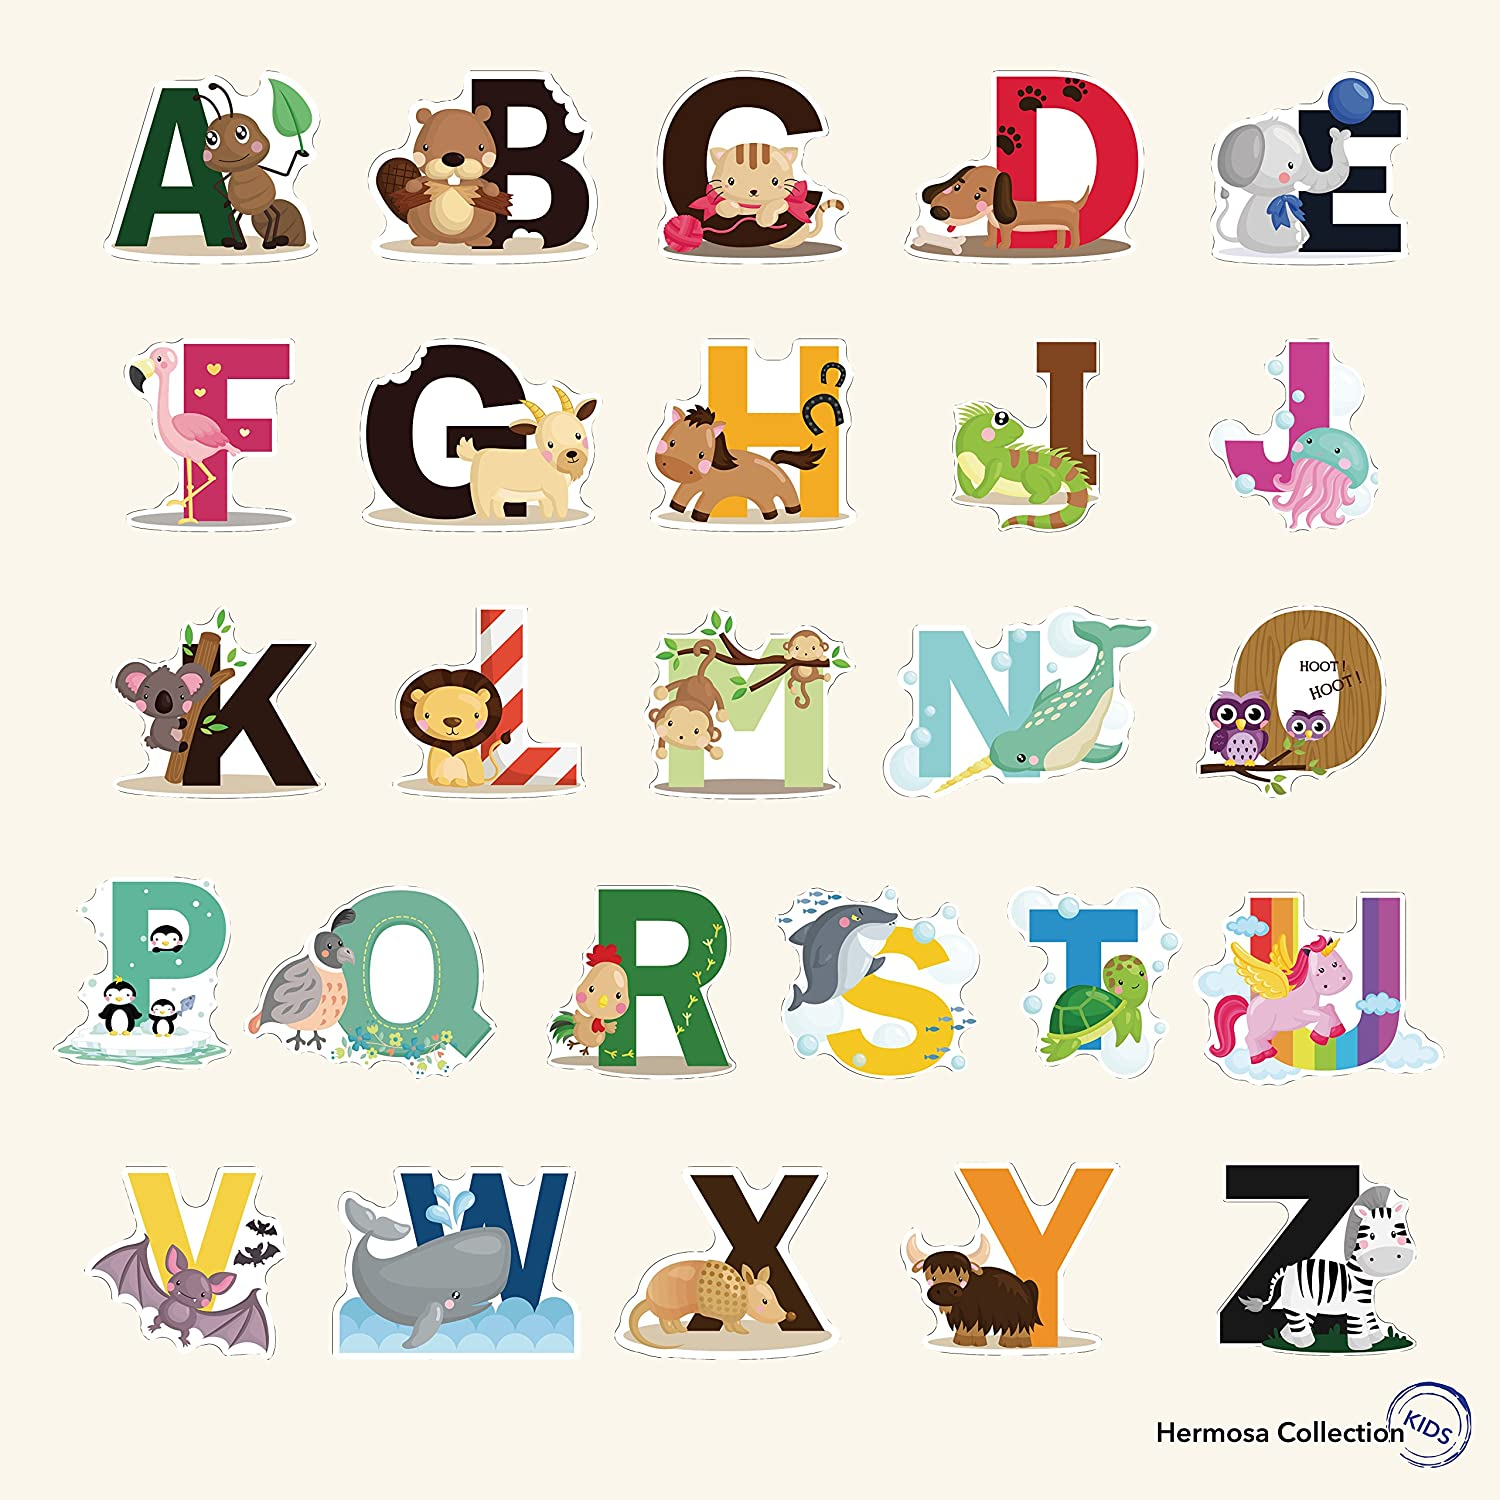 Fun Educational Alphabet with Animals for Baby Nursery and Kids Rooms - Wall Decor Easy Peel Stickers Decals Hermosa Collection